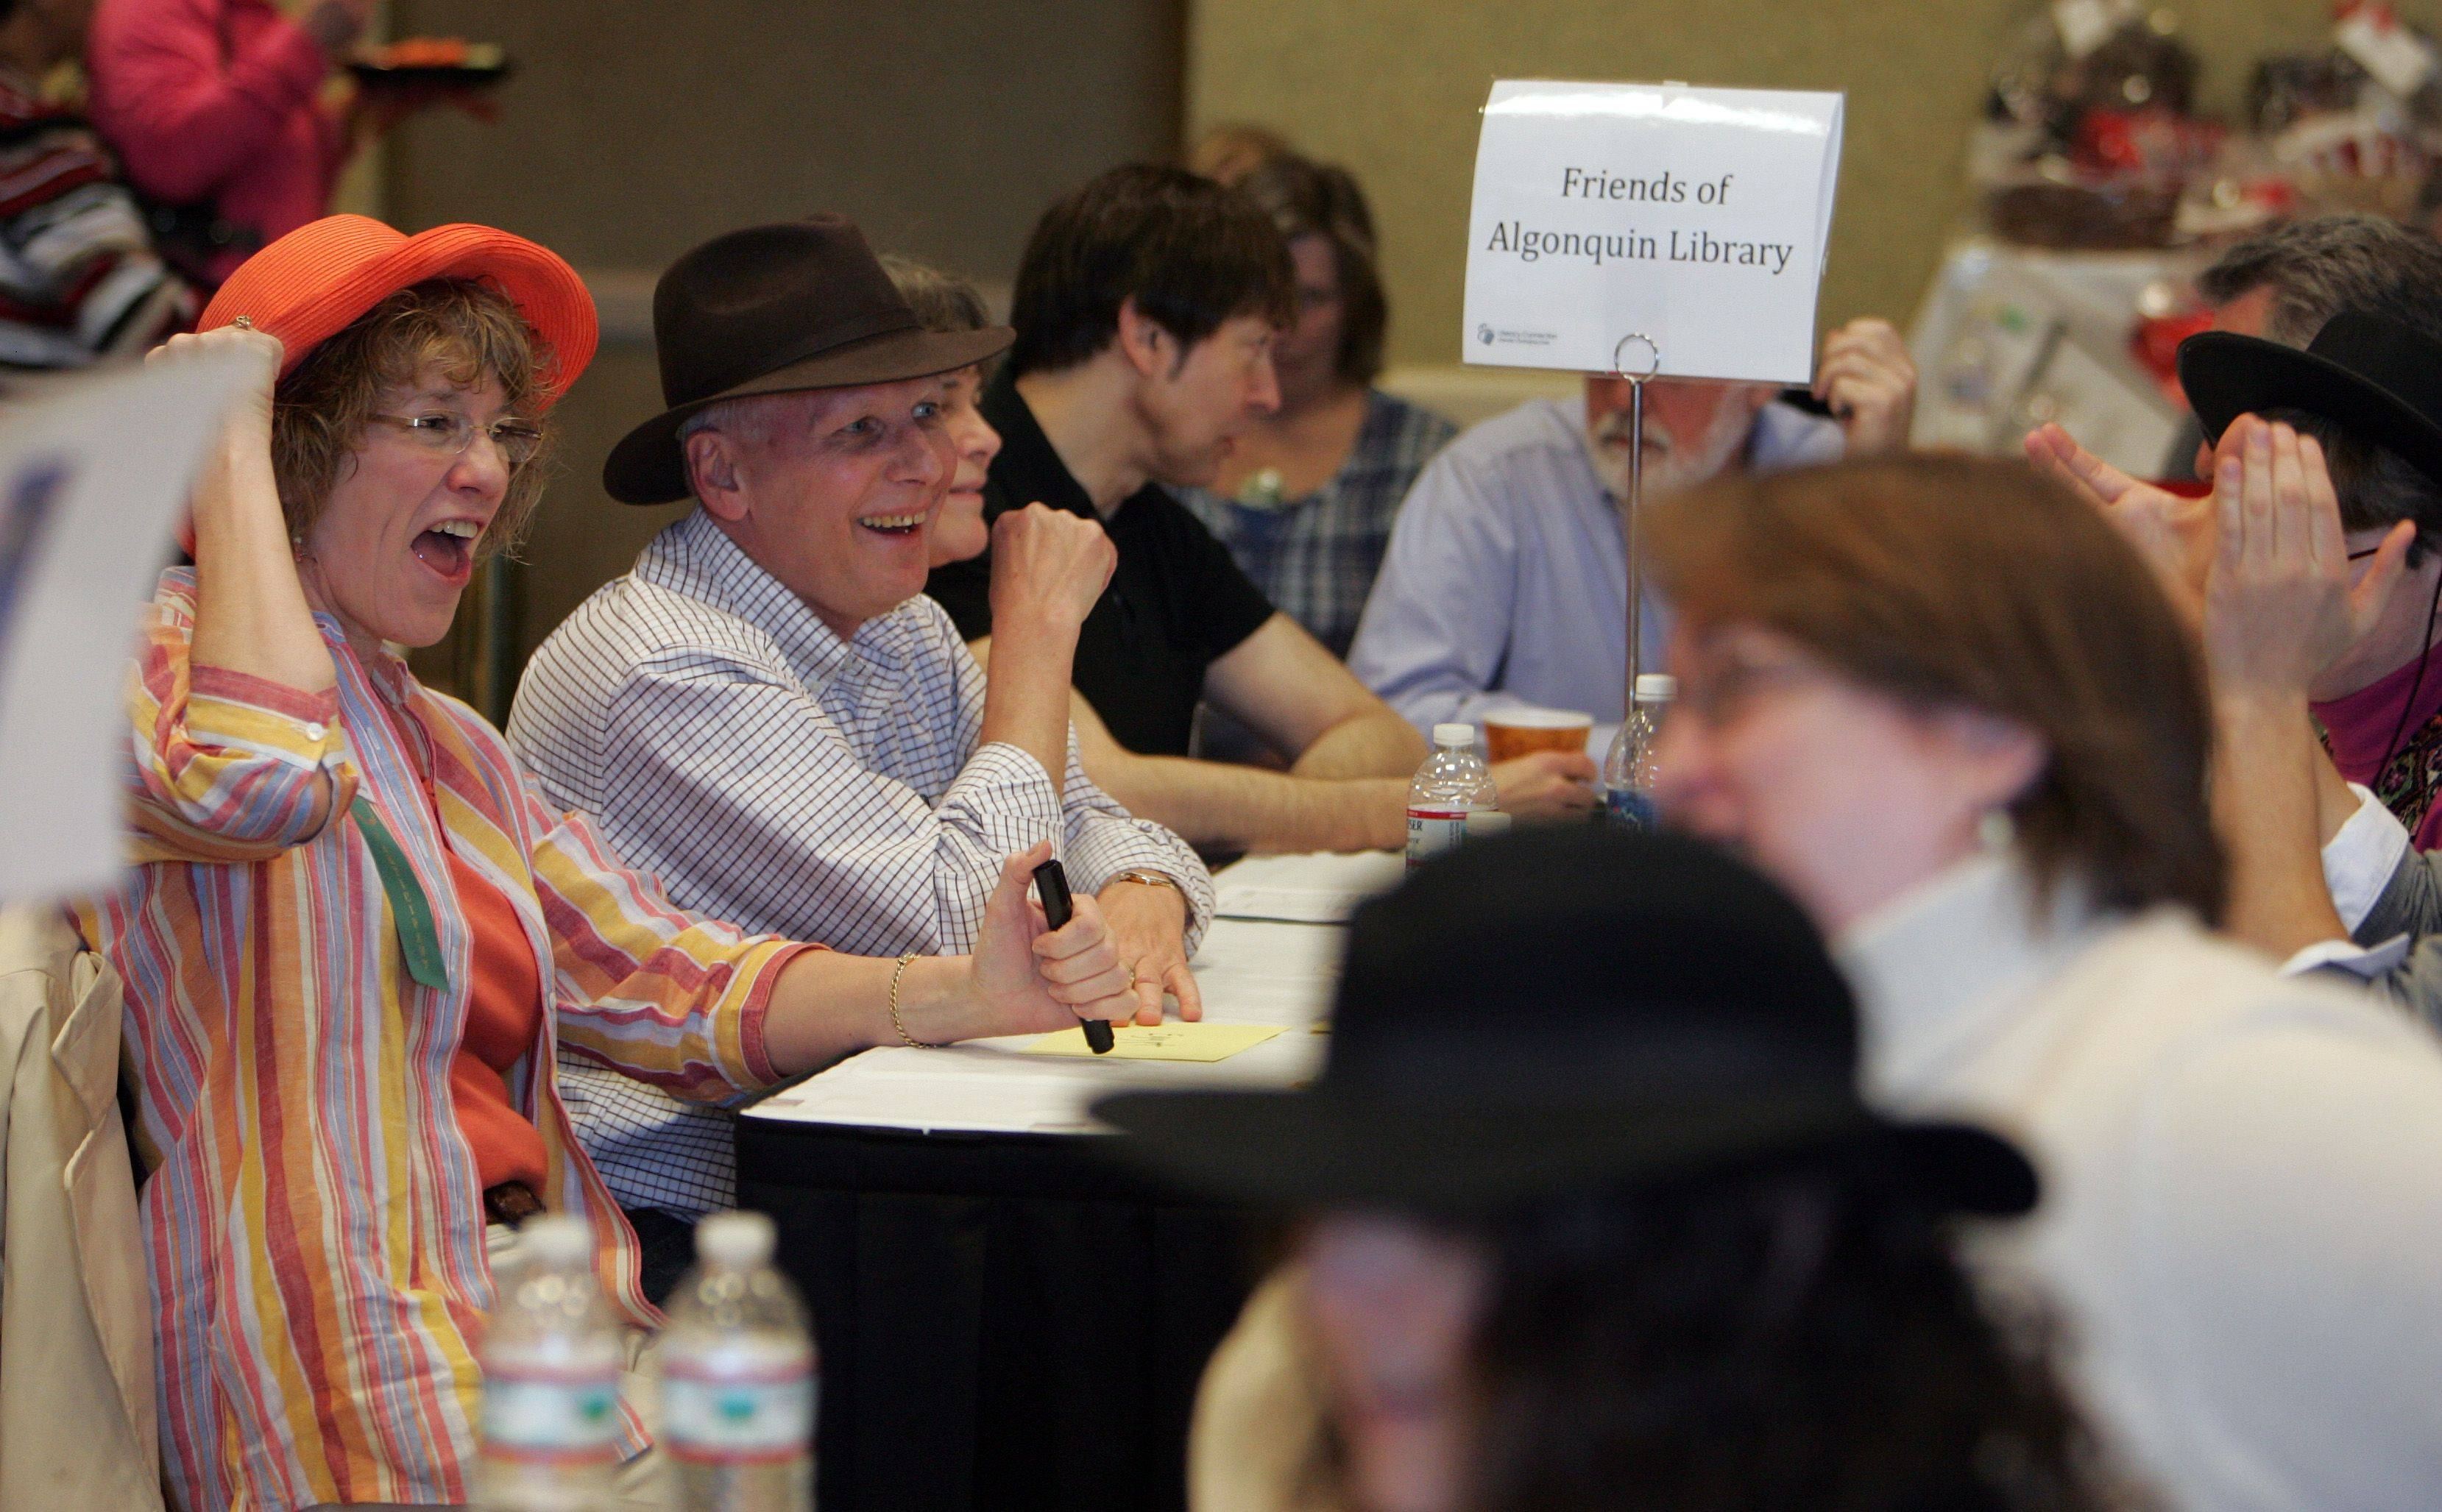 Virginia Freyre of the Friends of Algonquin Library group, left in orange hat, cheers after the team responded with the correct answer during the 14th-annual Trivia Bee presented by the Literacy Connection at the Grand Victoria Casino Saturday, March 19 in Elgin.